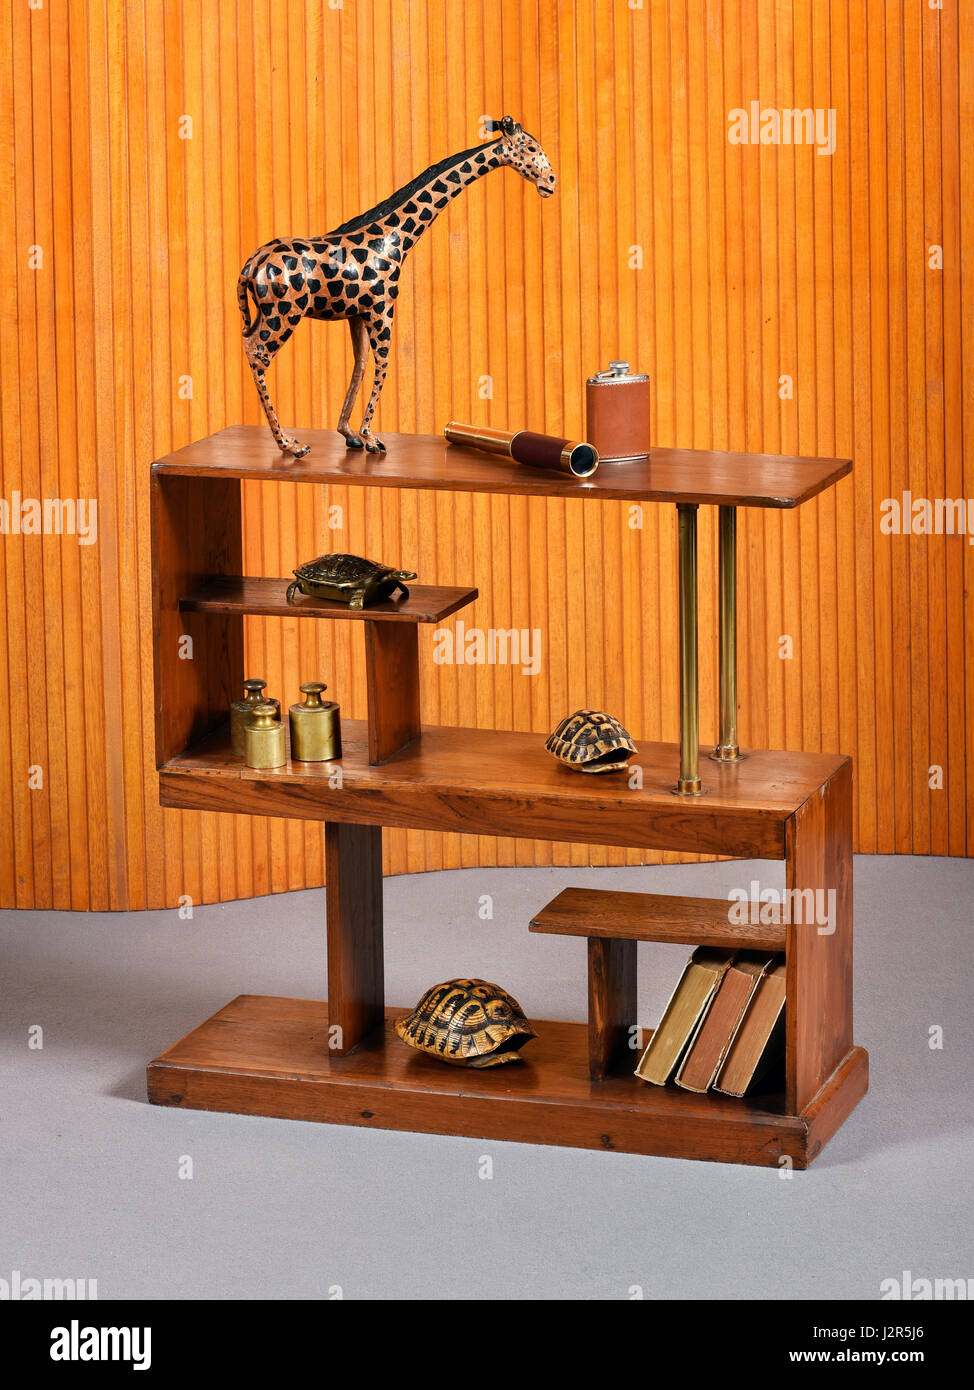 Small freestanding rectangular wooden bookcase or etagere with a souvenir wooden giraffe, books tortoiseshells and - Stock Image